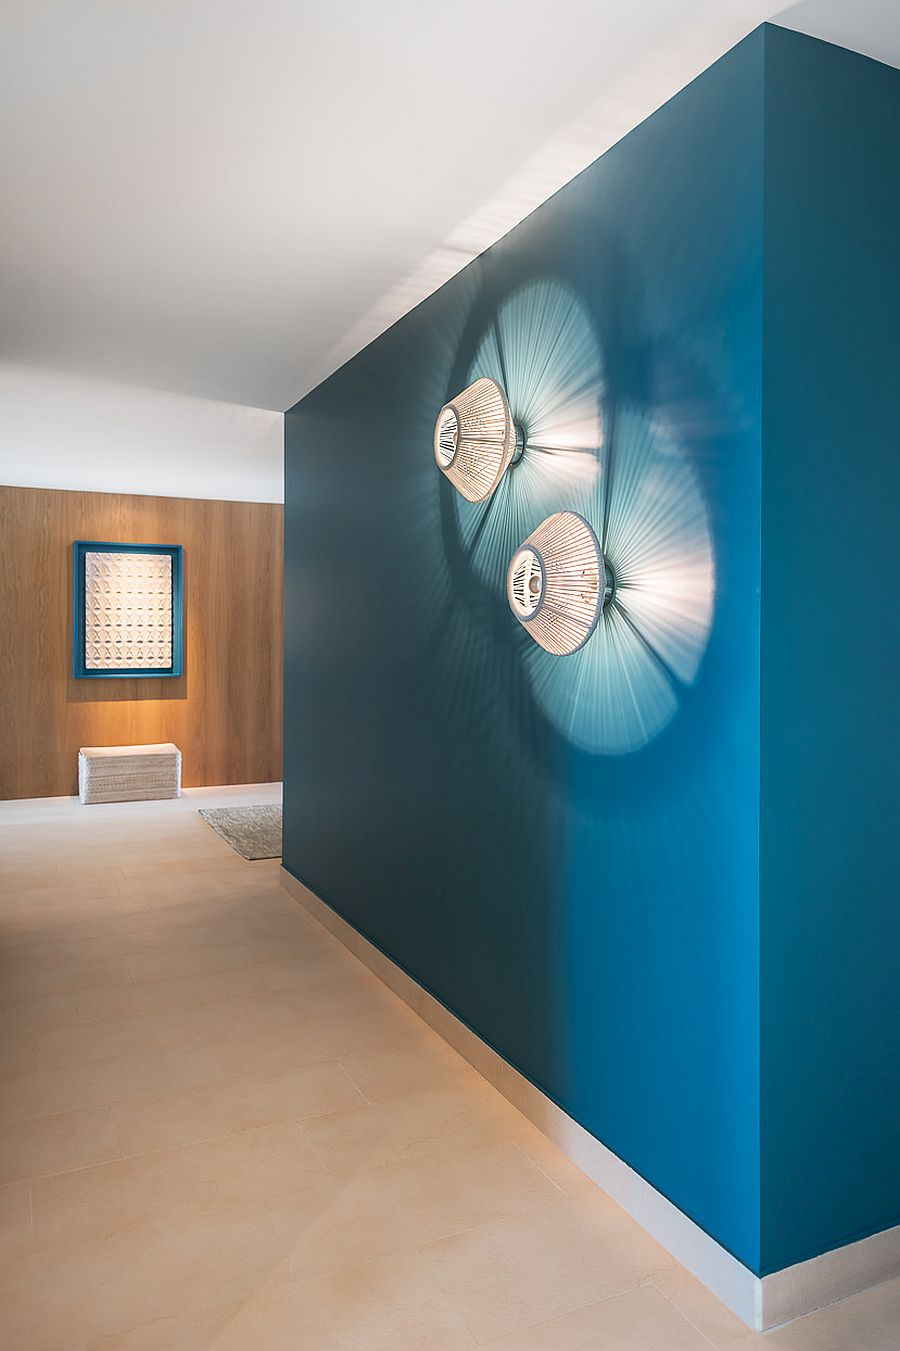 Splash-of-aquas-and-turquoise-in-the-living-room-shapes-eye-catching-focal-points-11319